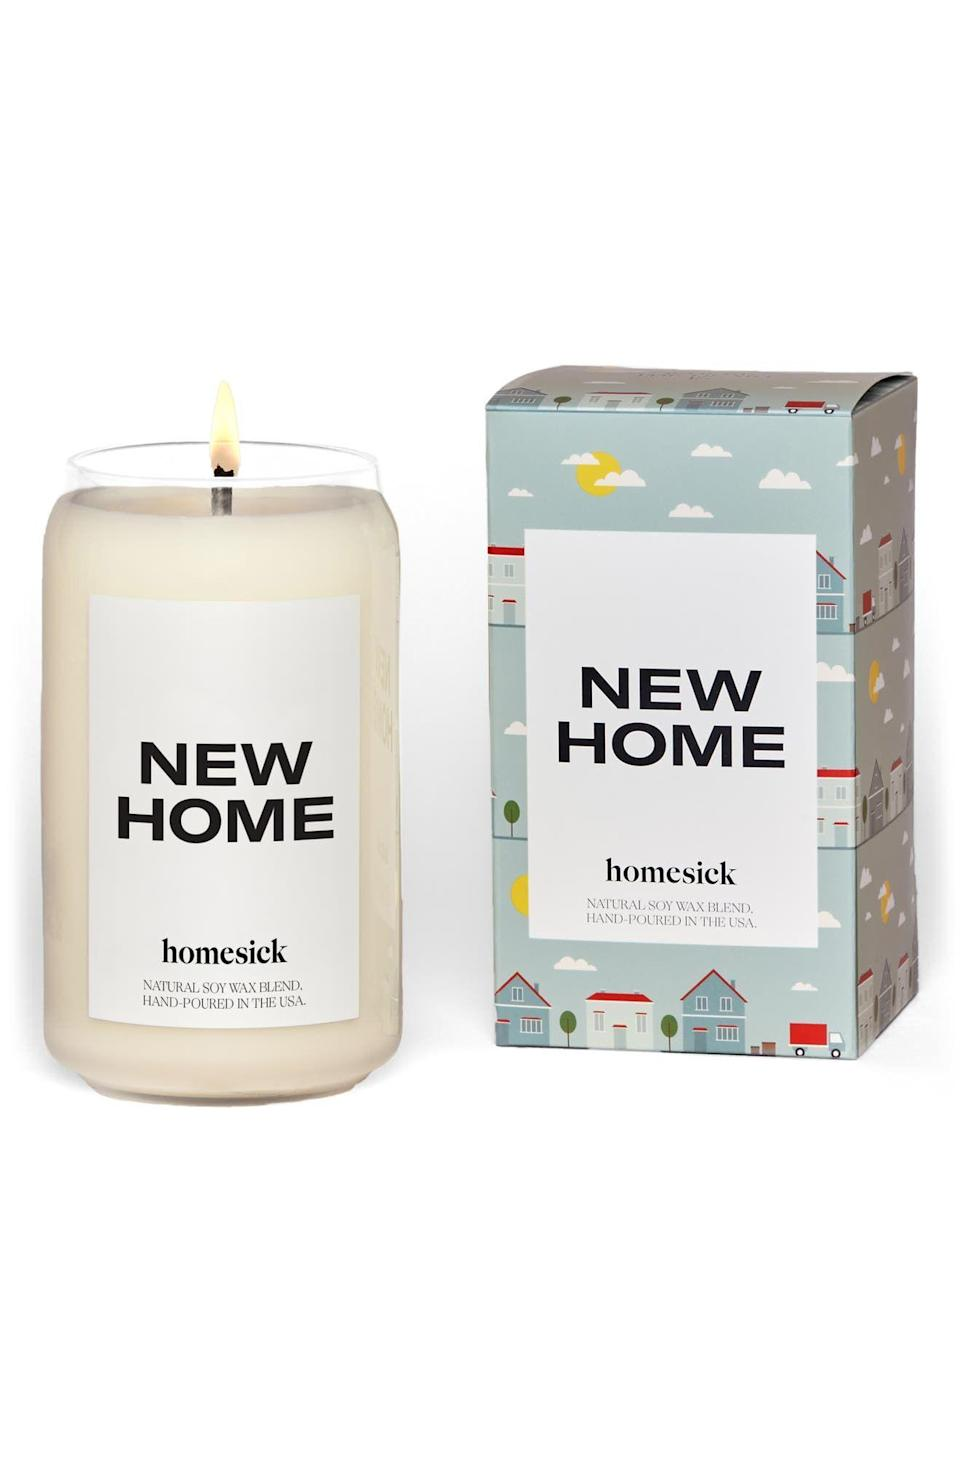 """<p><strong>Homesick</strong></p><p>nordstrom.com</p><p><strong>$34.00</strong></p><p><a href=""""https://go.redirectingat.com?id=74968X1596630&url=https%3A%2F%2Fwww.nordstrom.com%2Fs%2Fhomesick-new-home-candle%2F5916104%3Forigin%3Dcategory-personalizedsort%26breadcrumb%3DHome%252FBrands%252Fhomesick%26color%3D100&sref=https%3A%2F%2Fwww.oprahdaily.com%2Flife%2Fg23584712%2Fbest-scented-candles%2F"""" rel=""""nofollow noopener"""" target=""""_blank"""" data-ylk=""""slk:SHOP NOW"""" class=""""link rapid-noclick-resp"""">SHOP NOW</a></p><p>No matter how long you've been residing in your humble abode, evoke that optimistic and fresh feeling of a new home with this clean jasmine, cedarwood, and musk scent. This would make a great housewarming gift as well. </p>"""